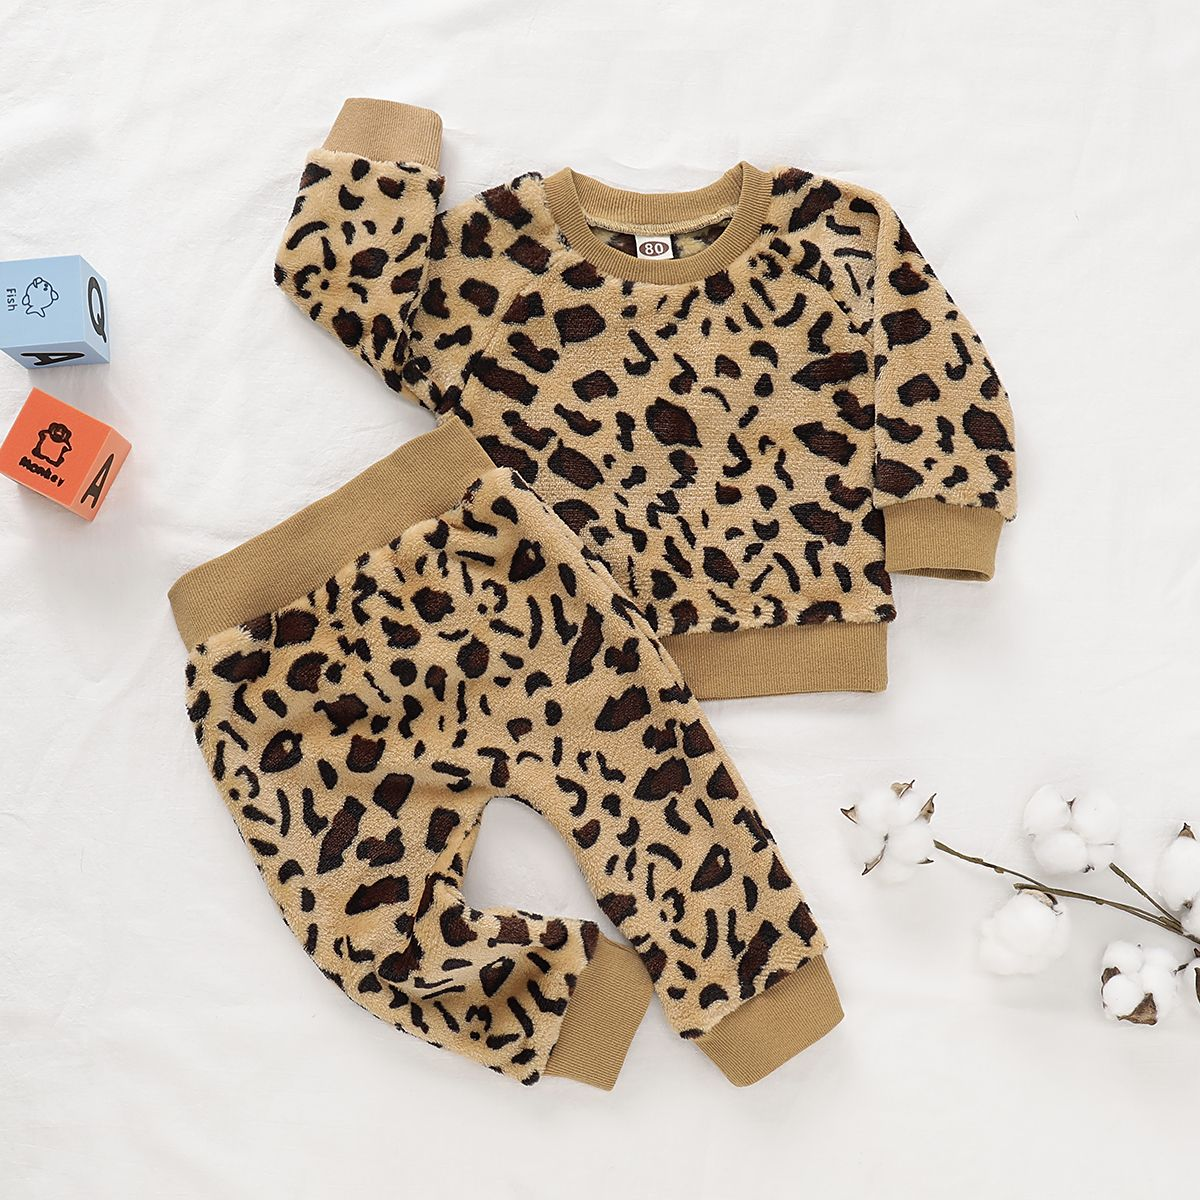 Baby Stylish Leopard Print Top and Pants Set  Baby girl outfits